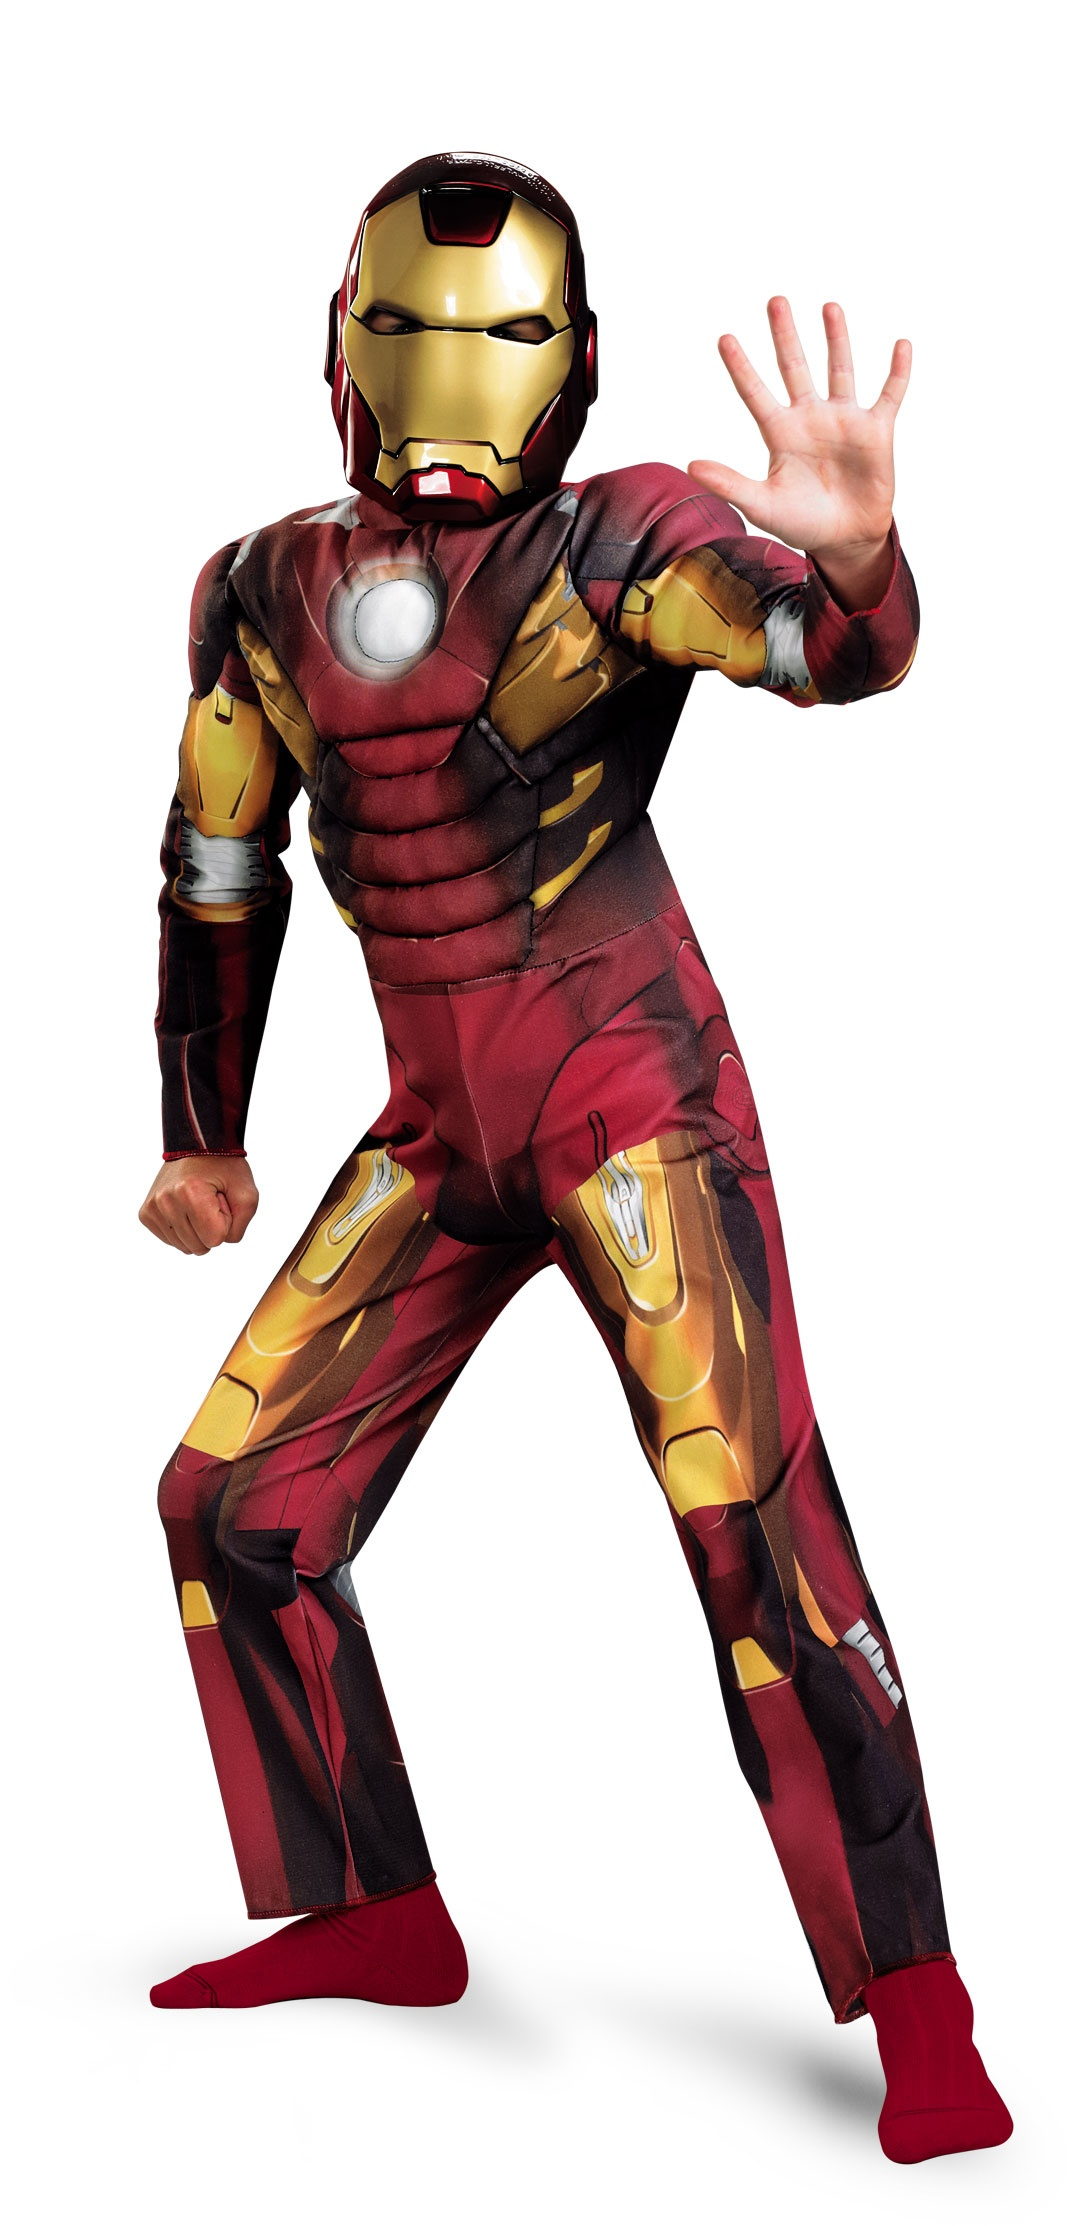 Iron Man Costume Ideas It's all about the suit! Suit up as American billionaire playboy, industrialist, and ingenious engineer Tony Stark and flaunt your strength and sense of savvy to the world in one of our fantastically designed Iron Man costumes!